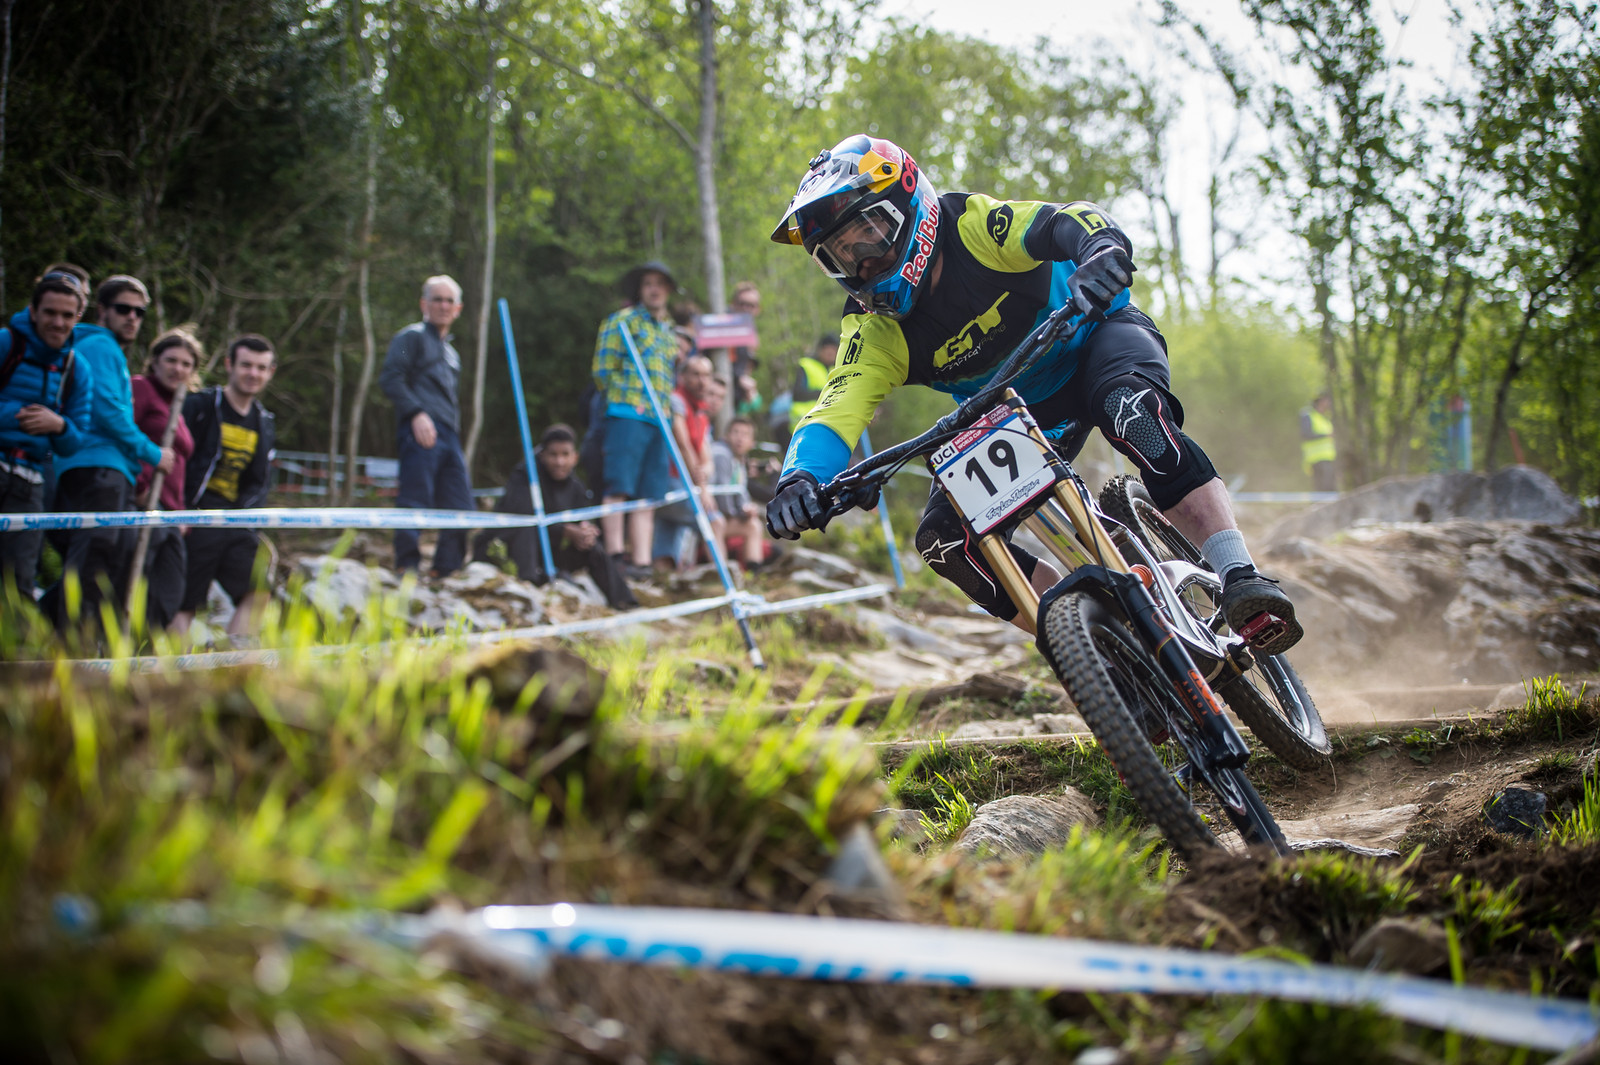 Brook Macdonald, Lourdes Race Morning Practice - iceman2058 - Mountain Biking Pictures - Vital MTB